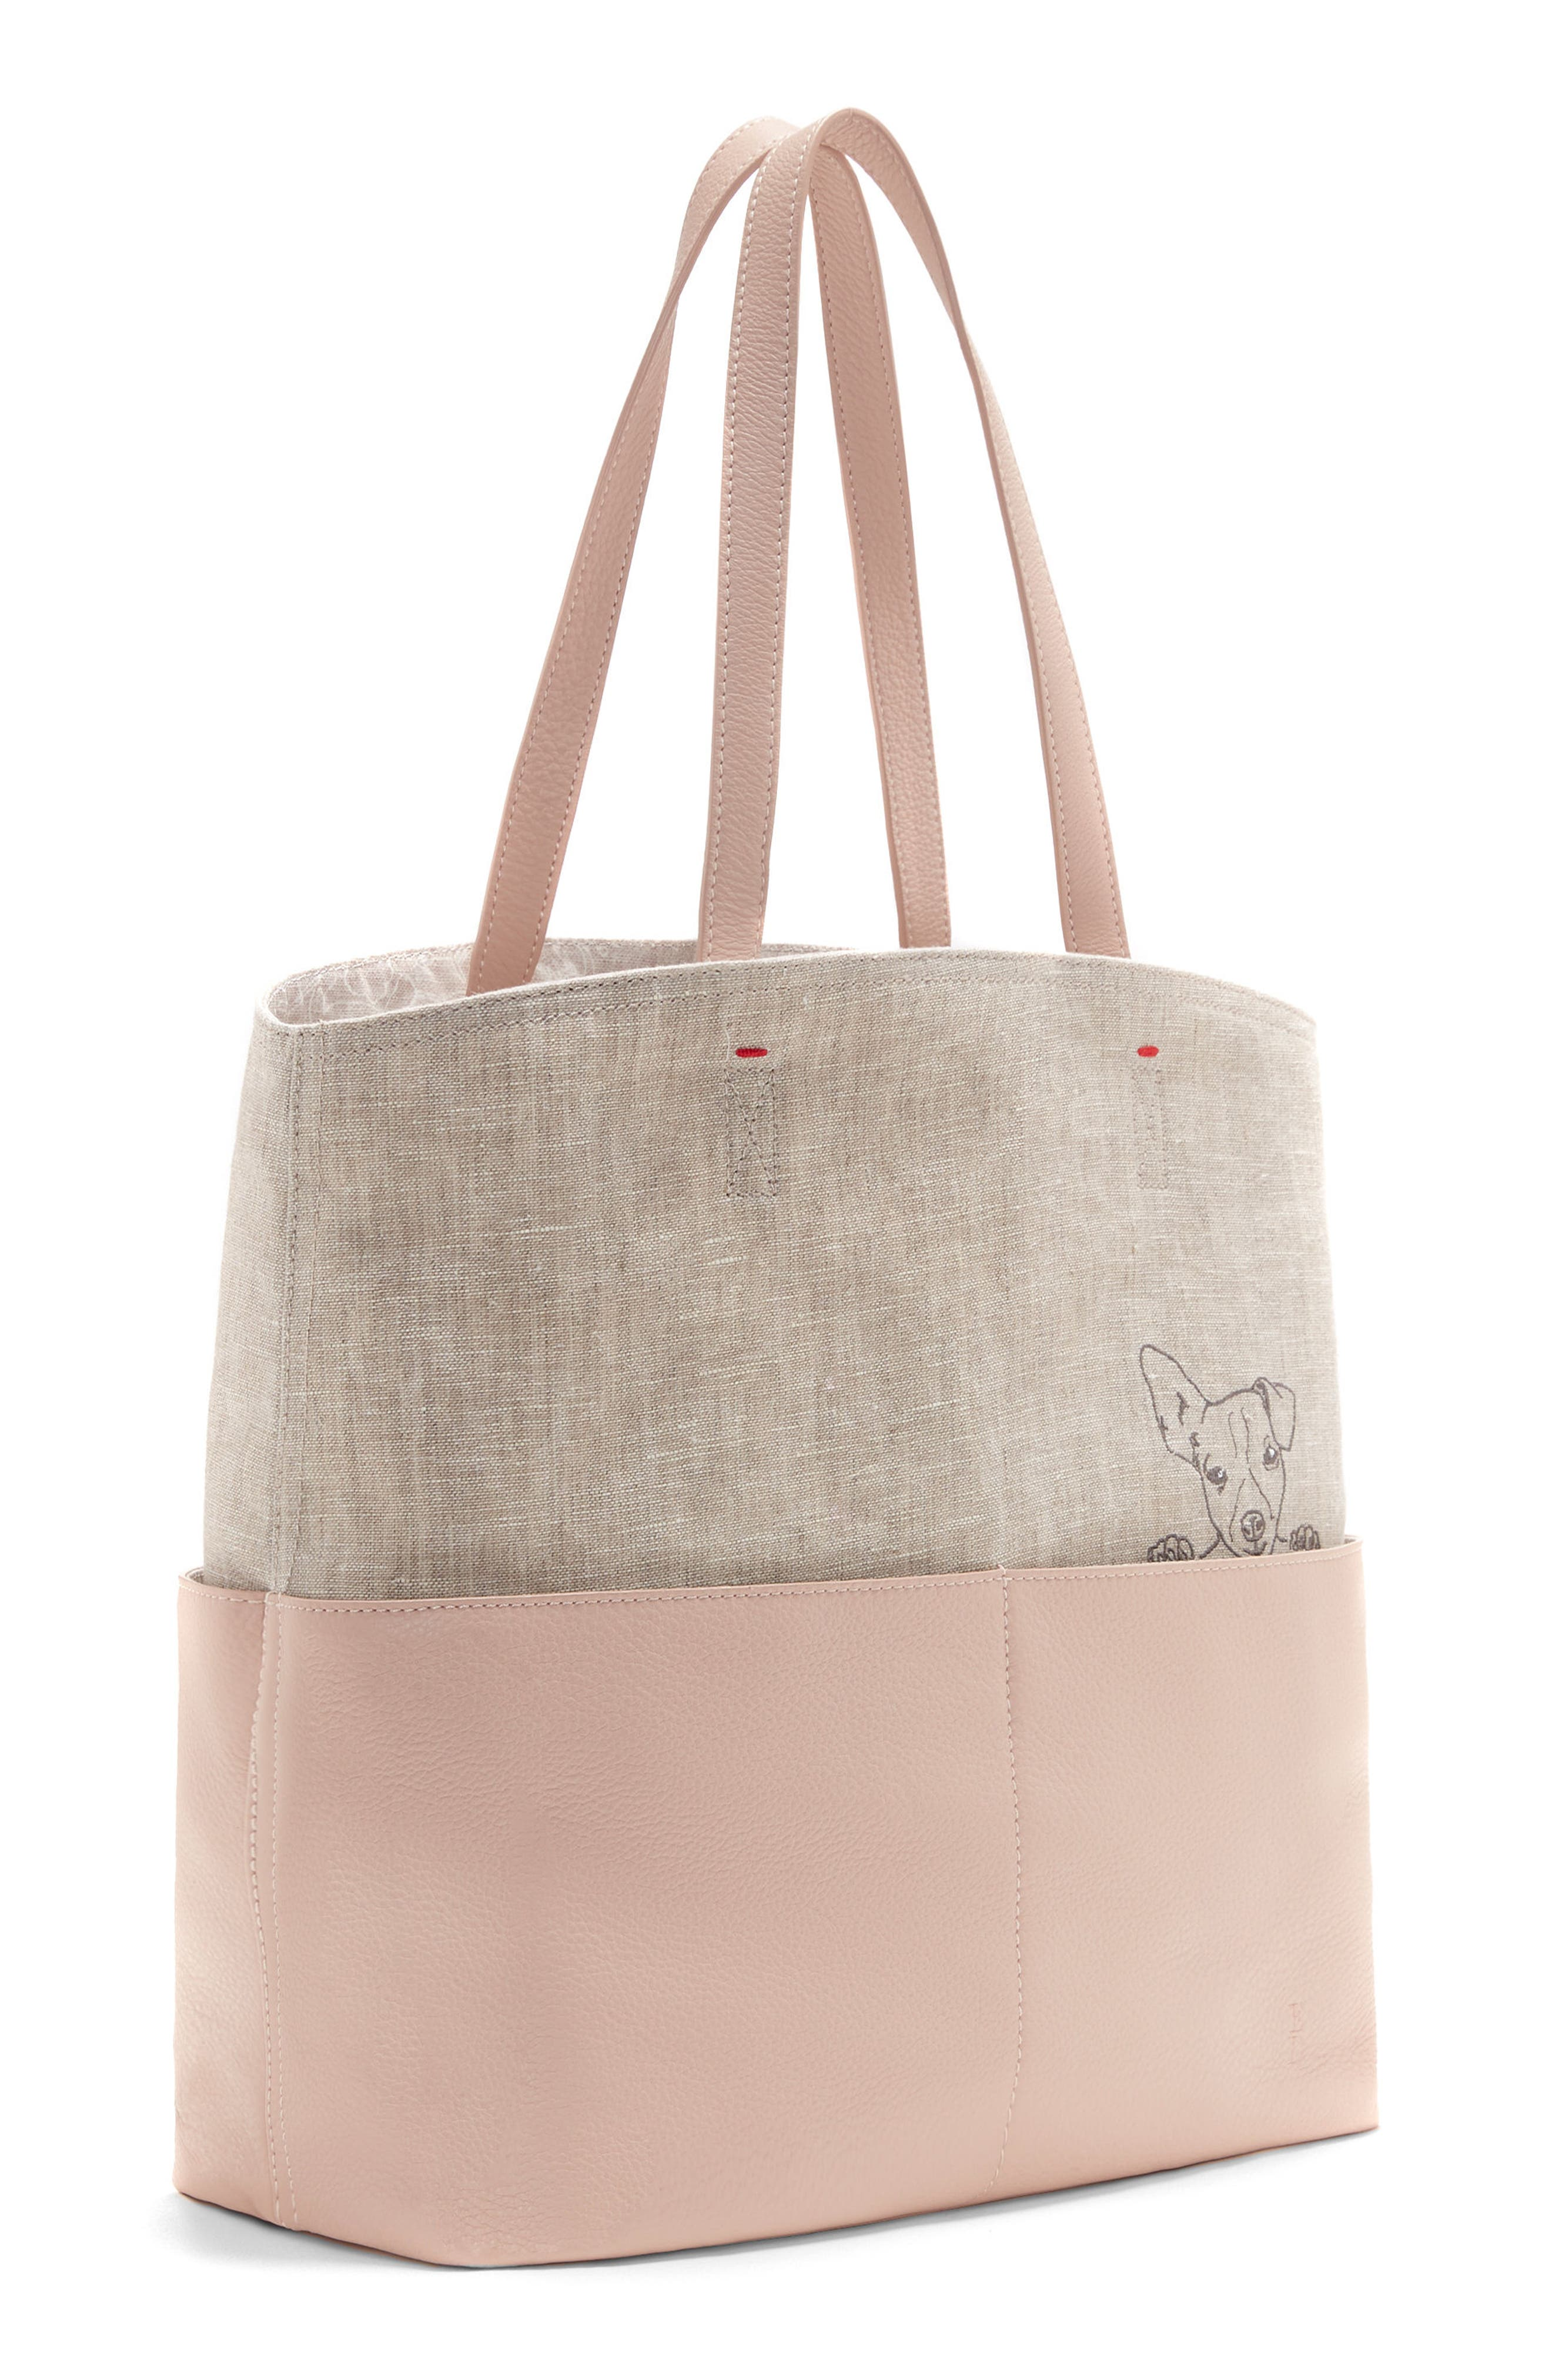 Henlee Canvas & Leather Tote,                             Alternate thumbnail 4, color,                             650